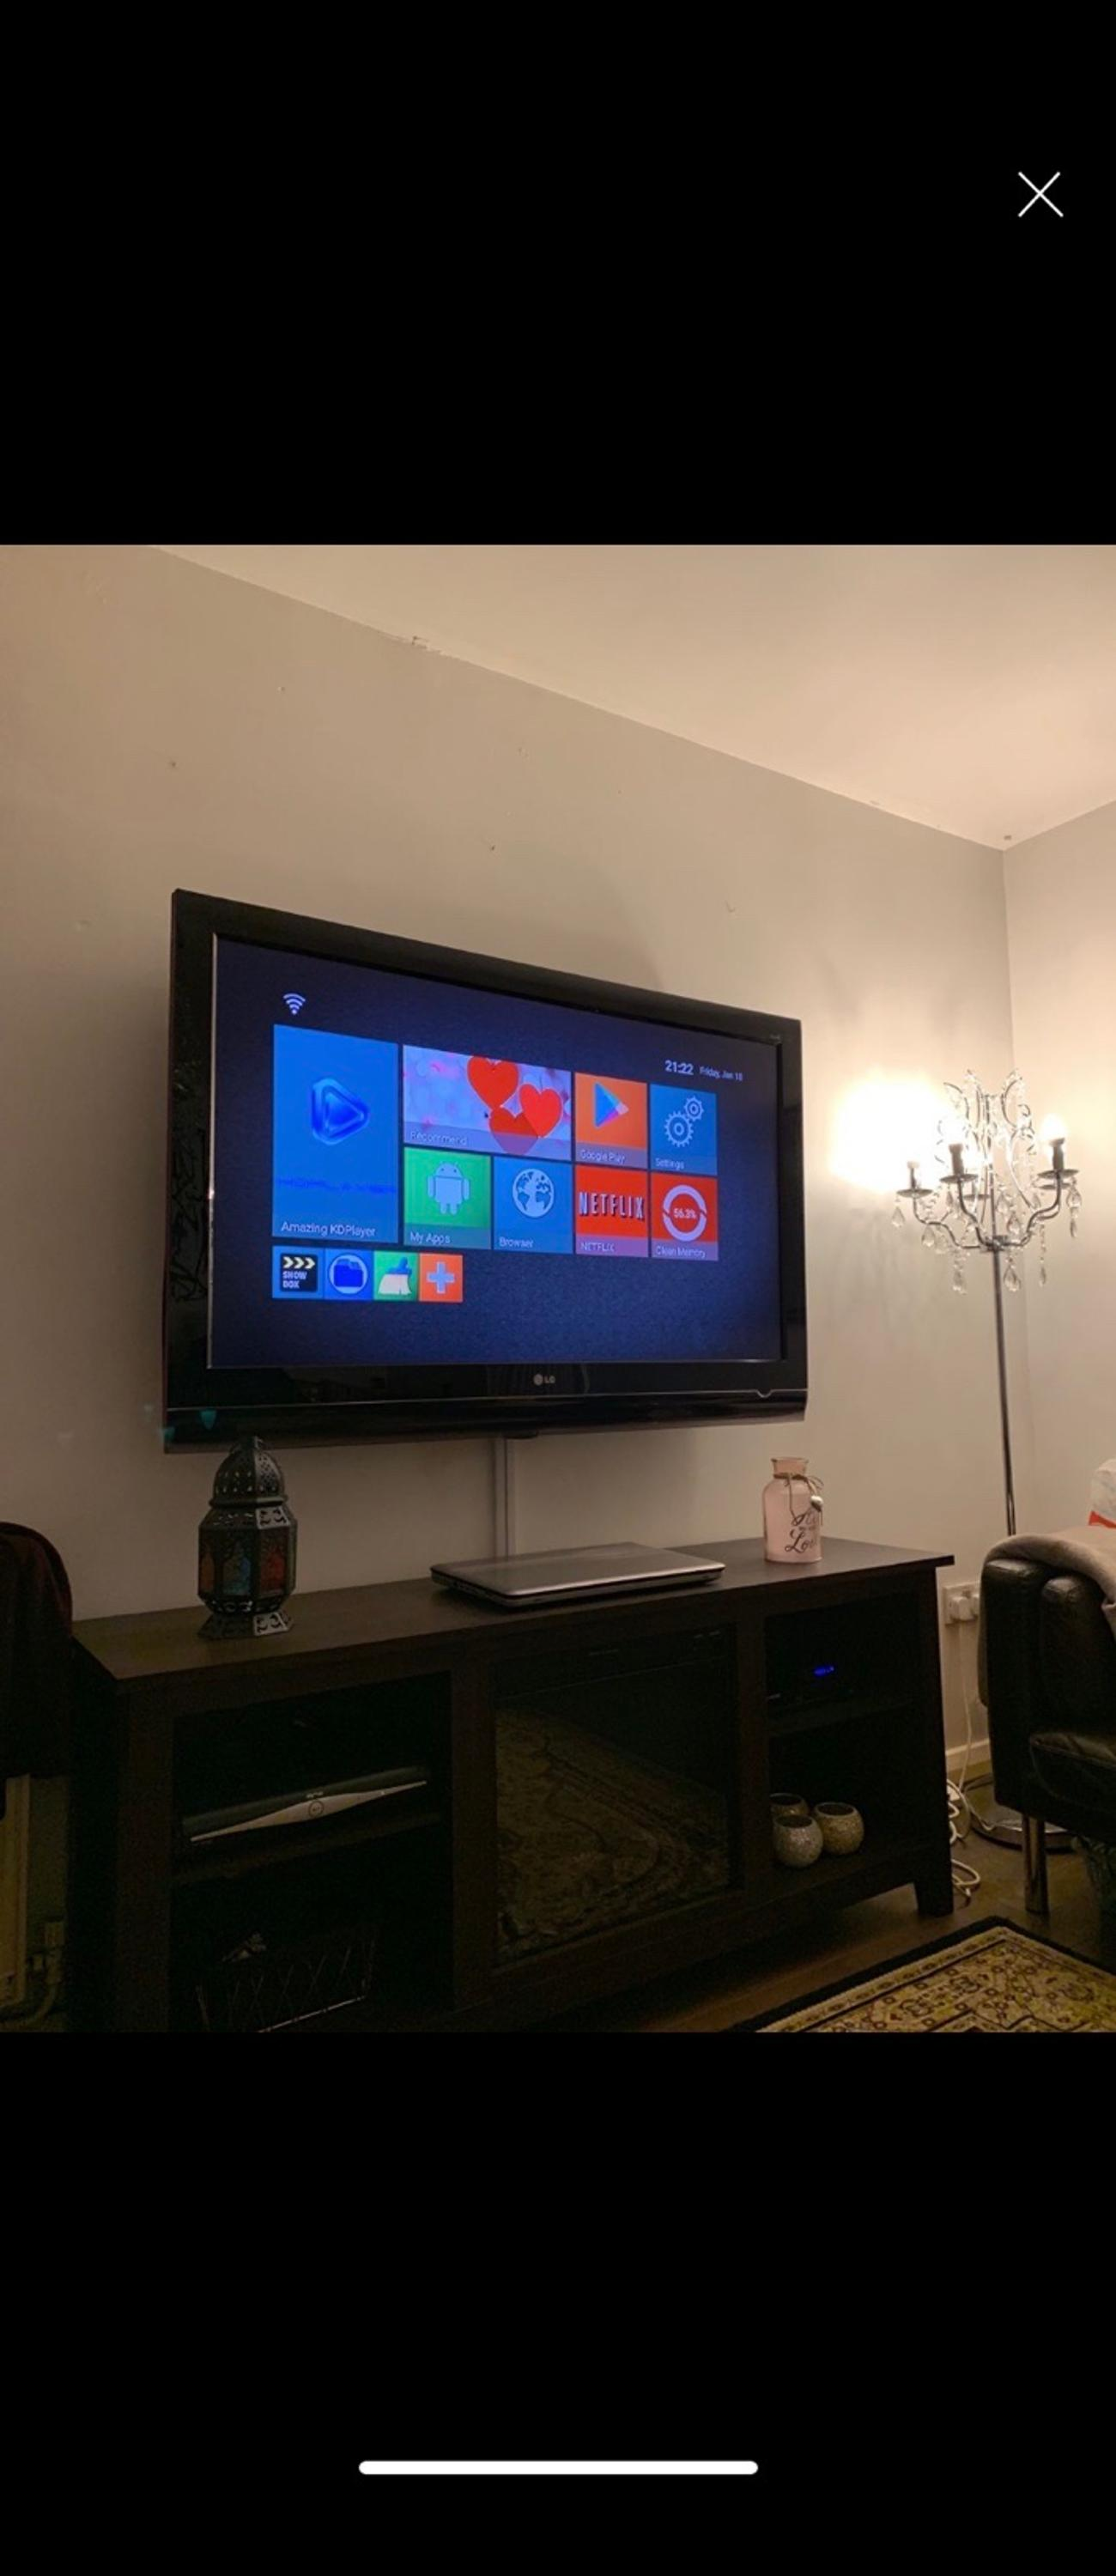 Lg tv for sale - 52inch  Perfect condition and works great, still has stickers on tv.  THIS IS NOT A SMART TV.